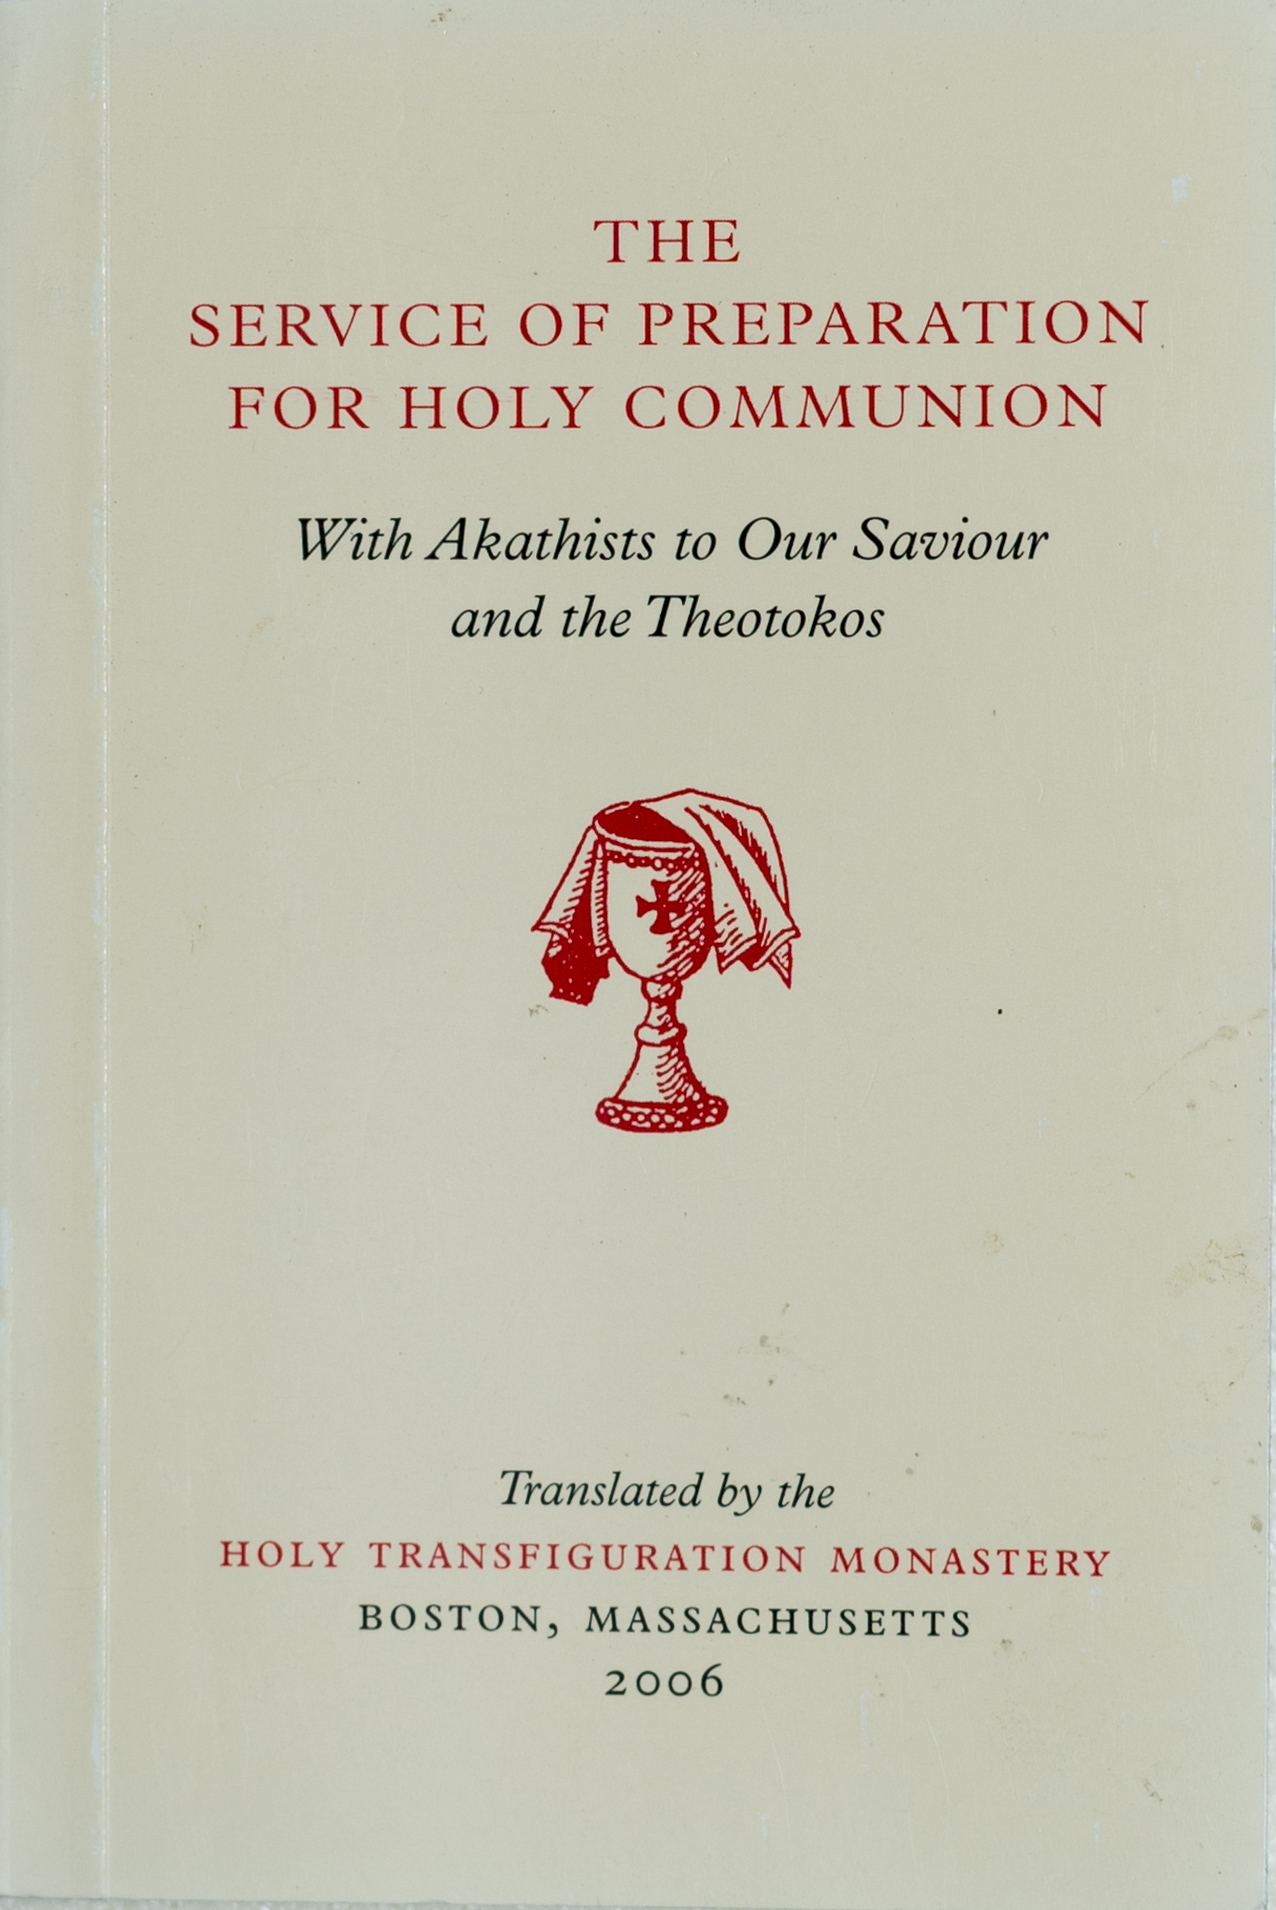 The Service of Preparation For Holy Communion: With Akathists to Our Saviour and the Theotokos